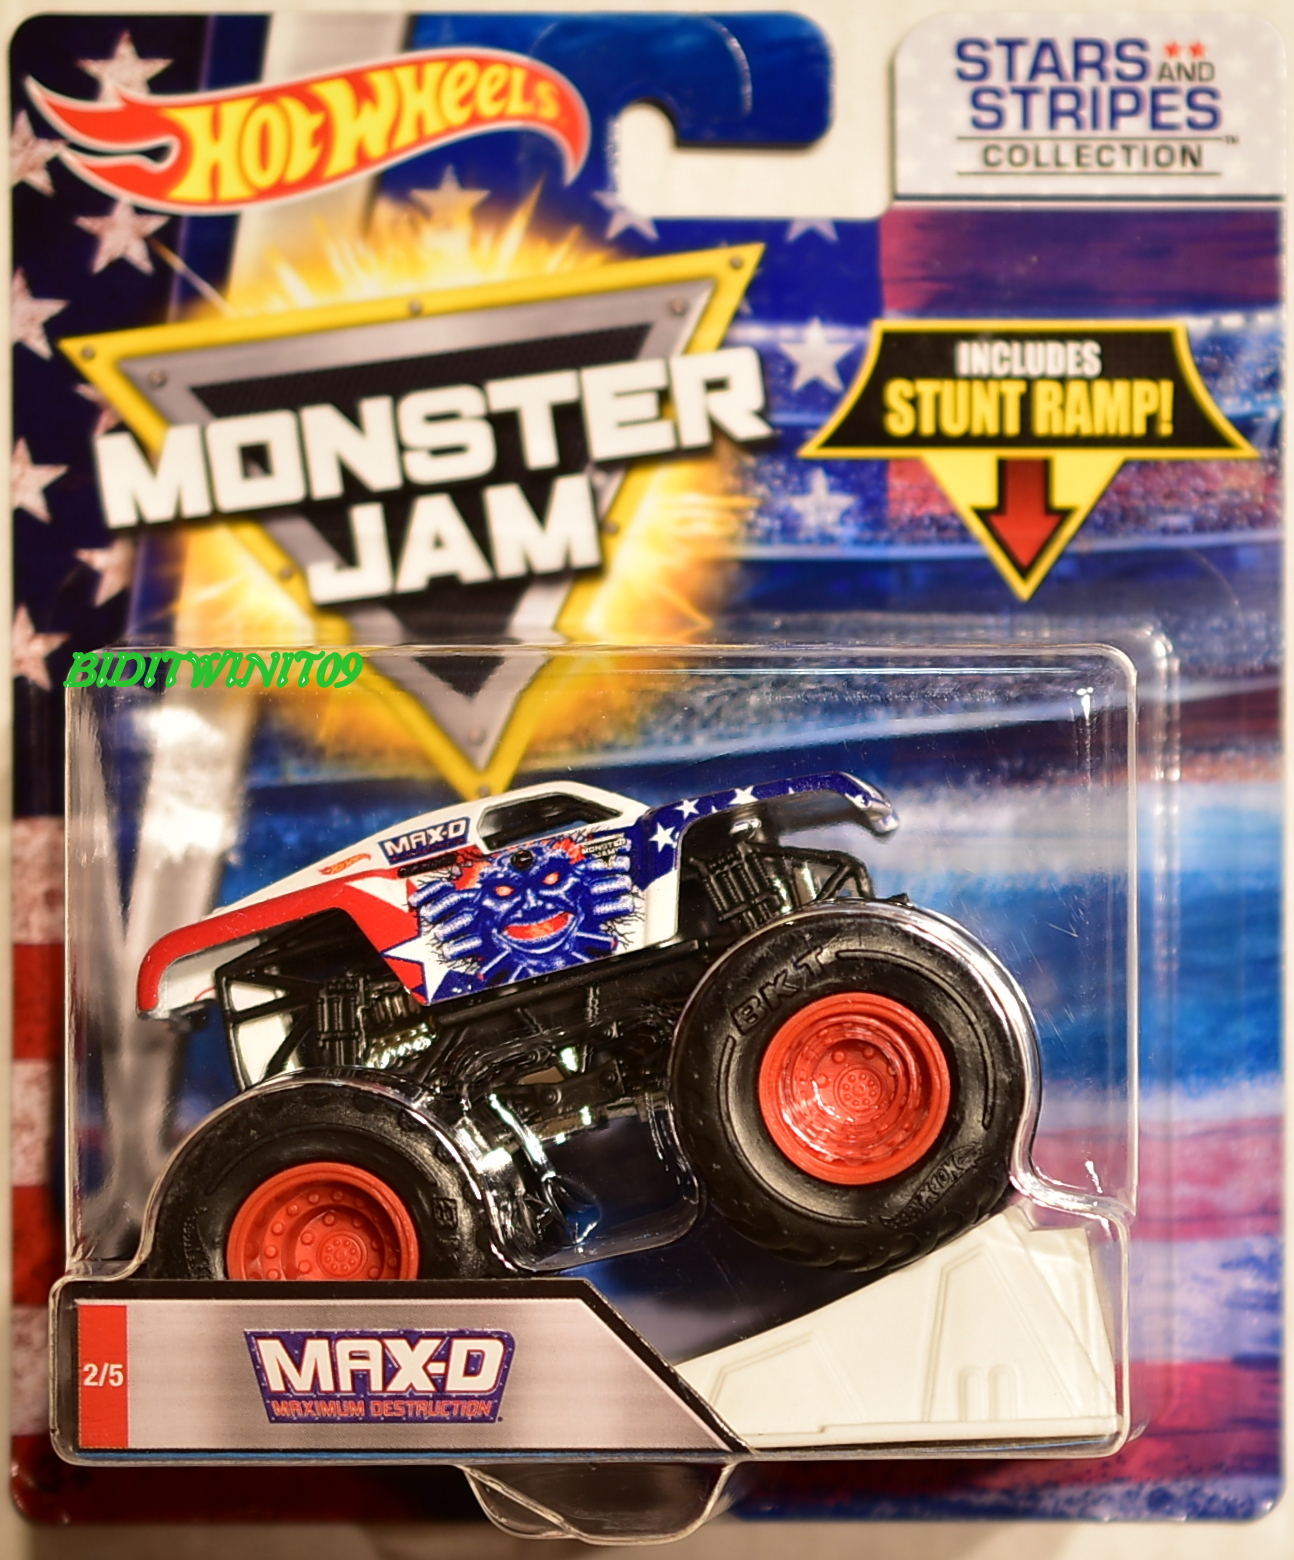 HOT WHEELS MONSTER JAM STARS AND STRIPERS COLLECTION STUNT RAMP MAX-D #2/5